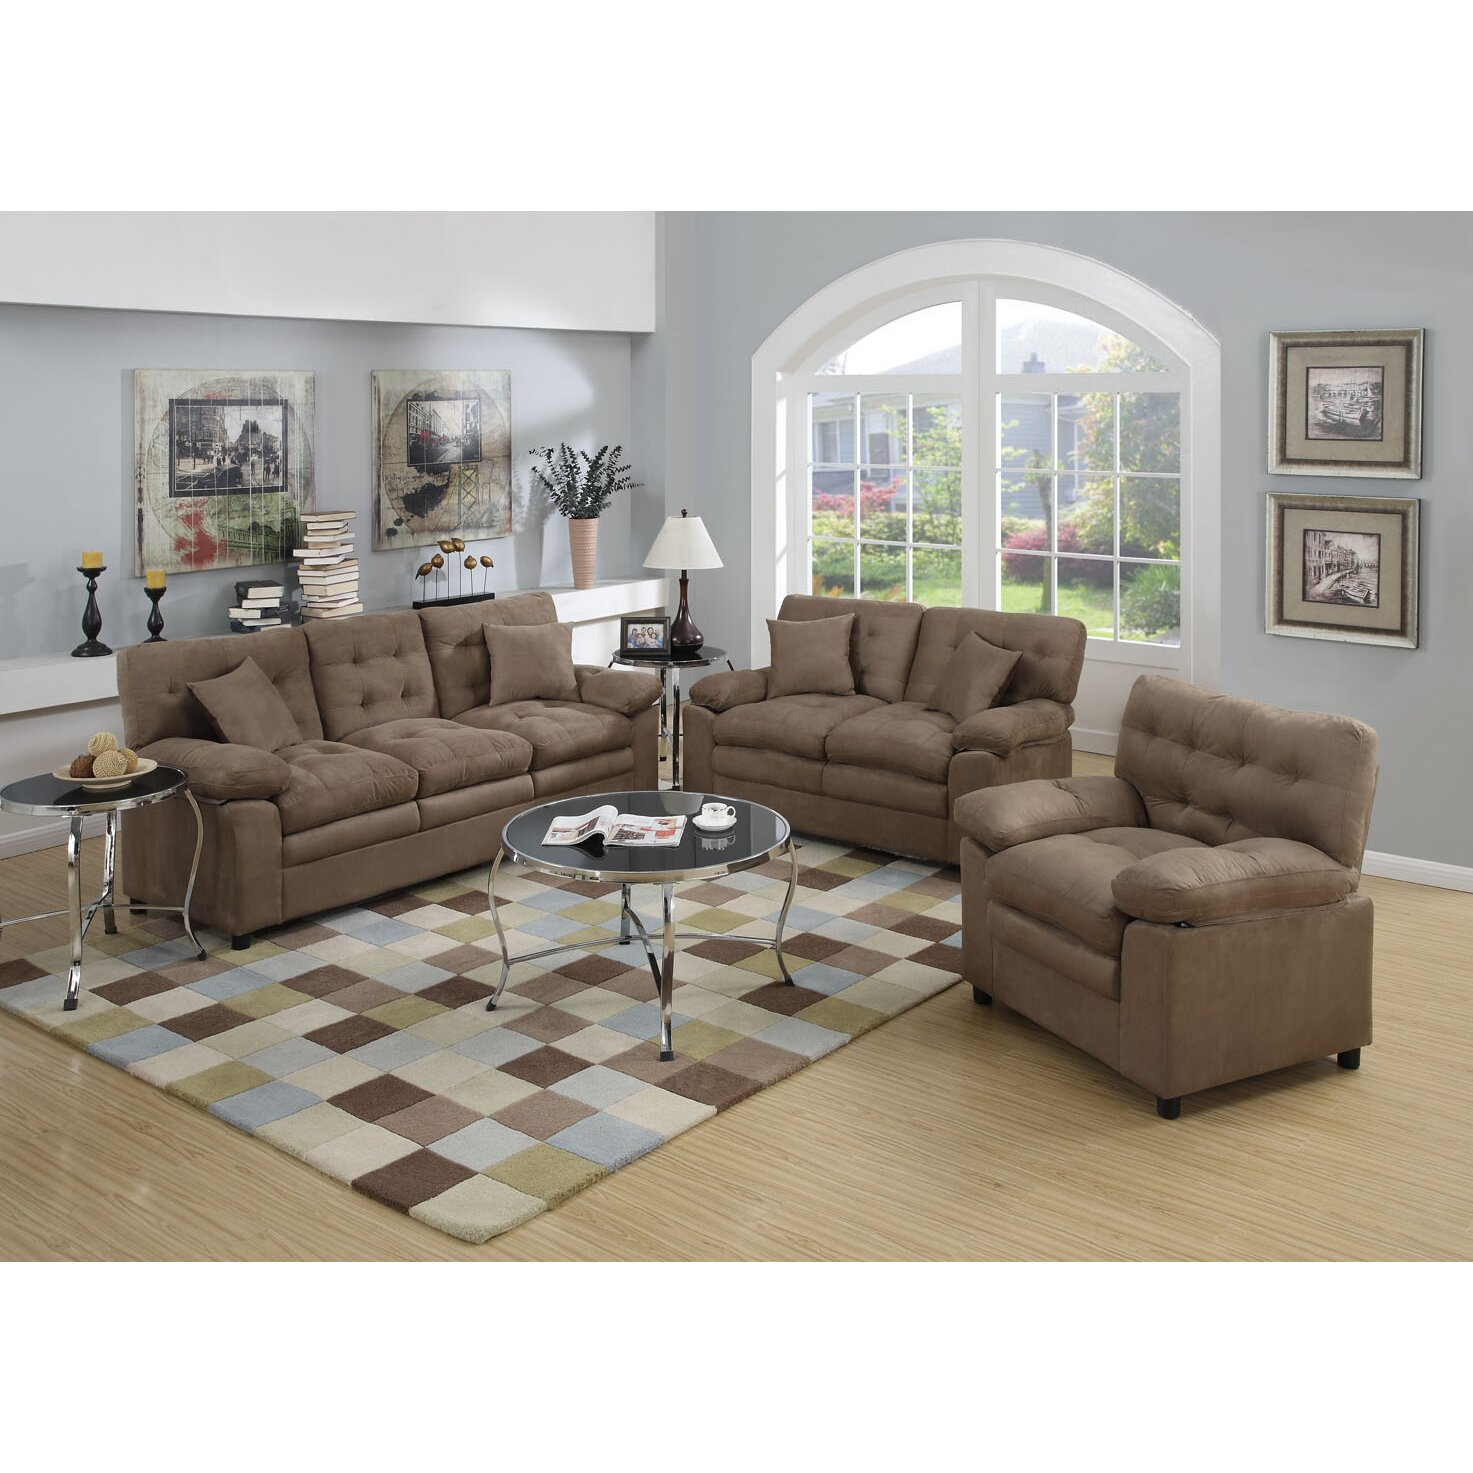 Poundex bobkona colona 3 piece living room set reviews for Living room furniture